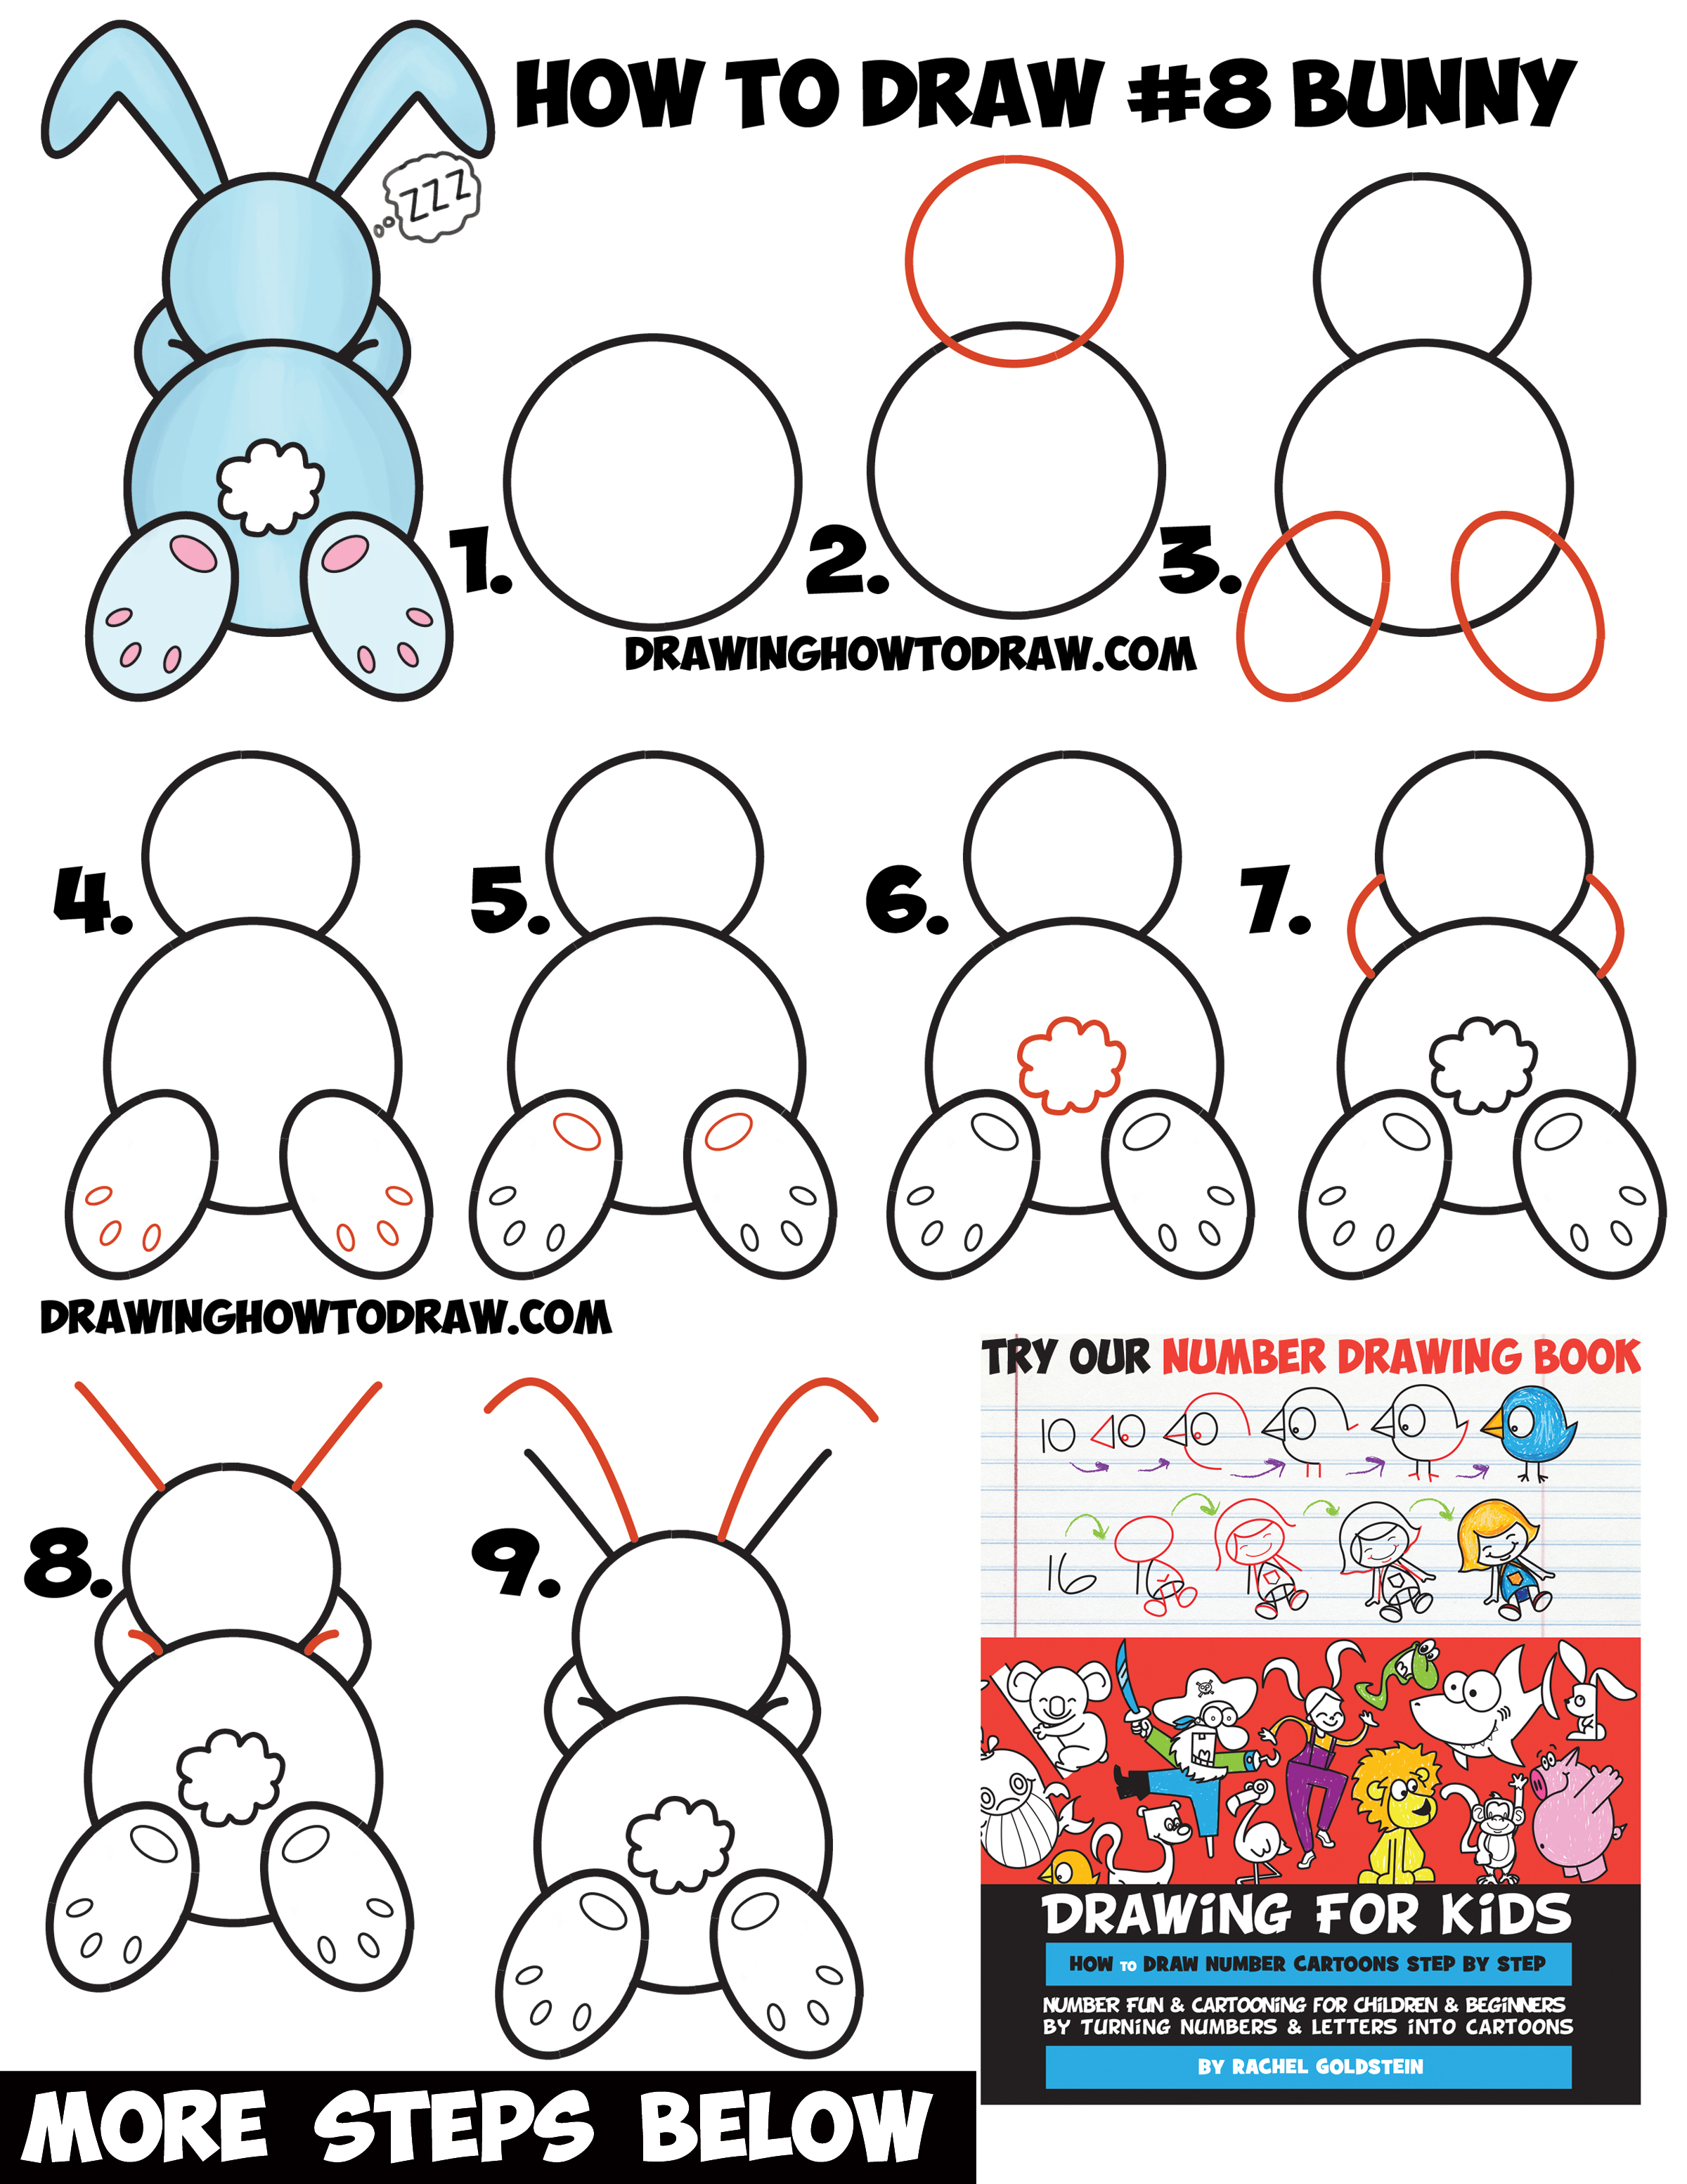 Drawn rabbit easy draw Shape Cute How to Easy